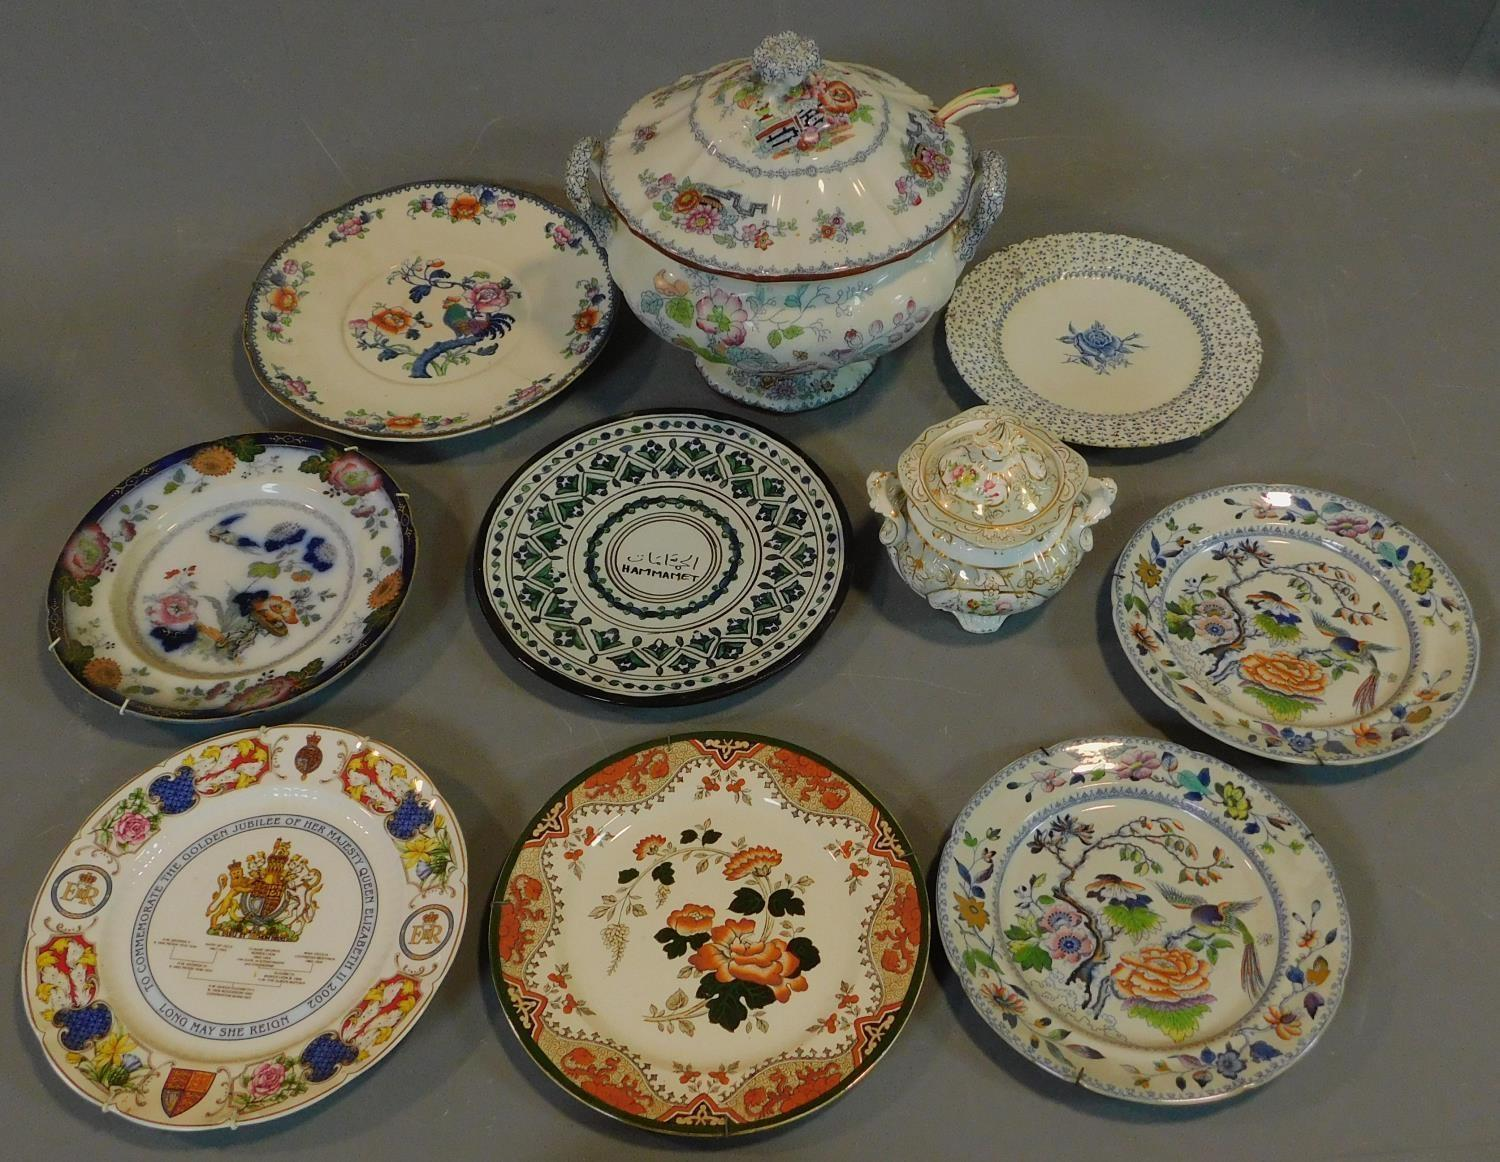 A 19th century Staffordshire ironstone tureen and cover (associated ladle) and various other